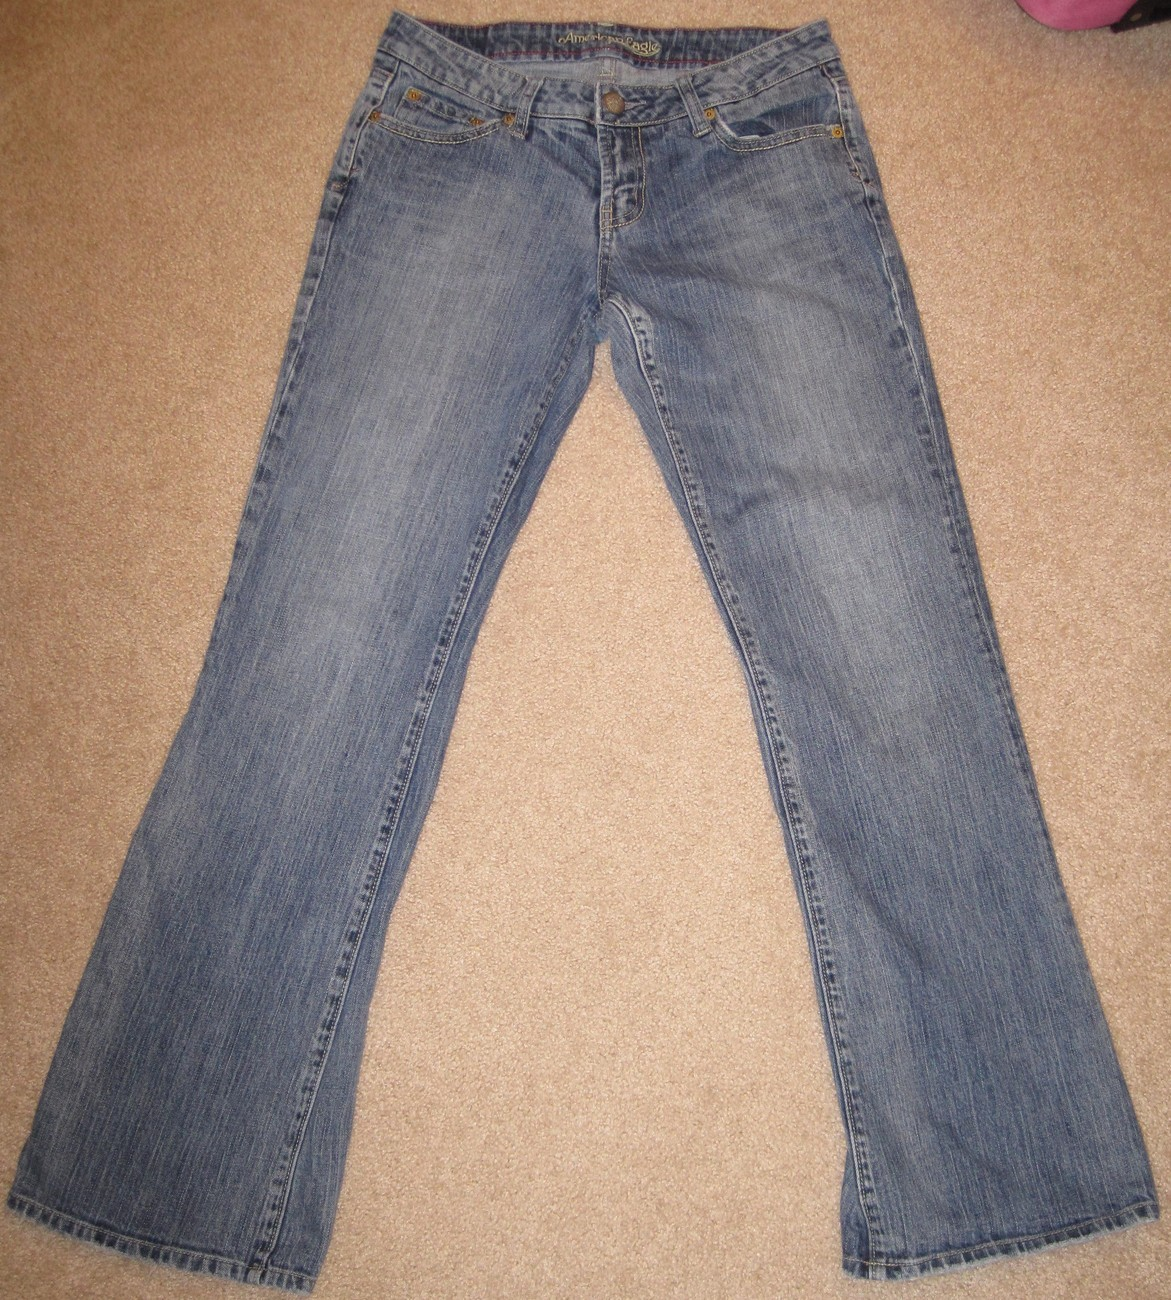 American Eagle Hipster Flare Jeans 6 Regular and 50 similar items